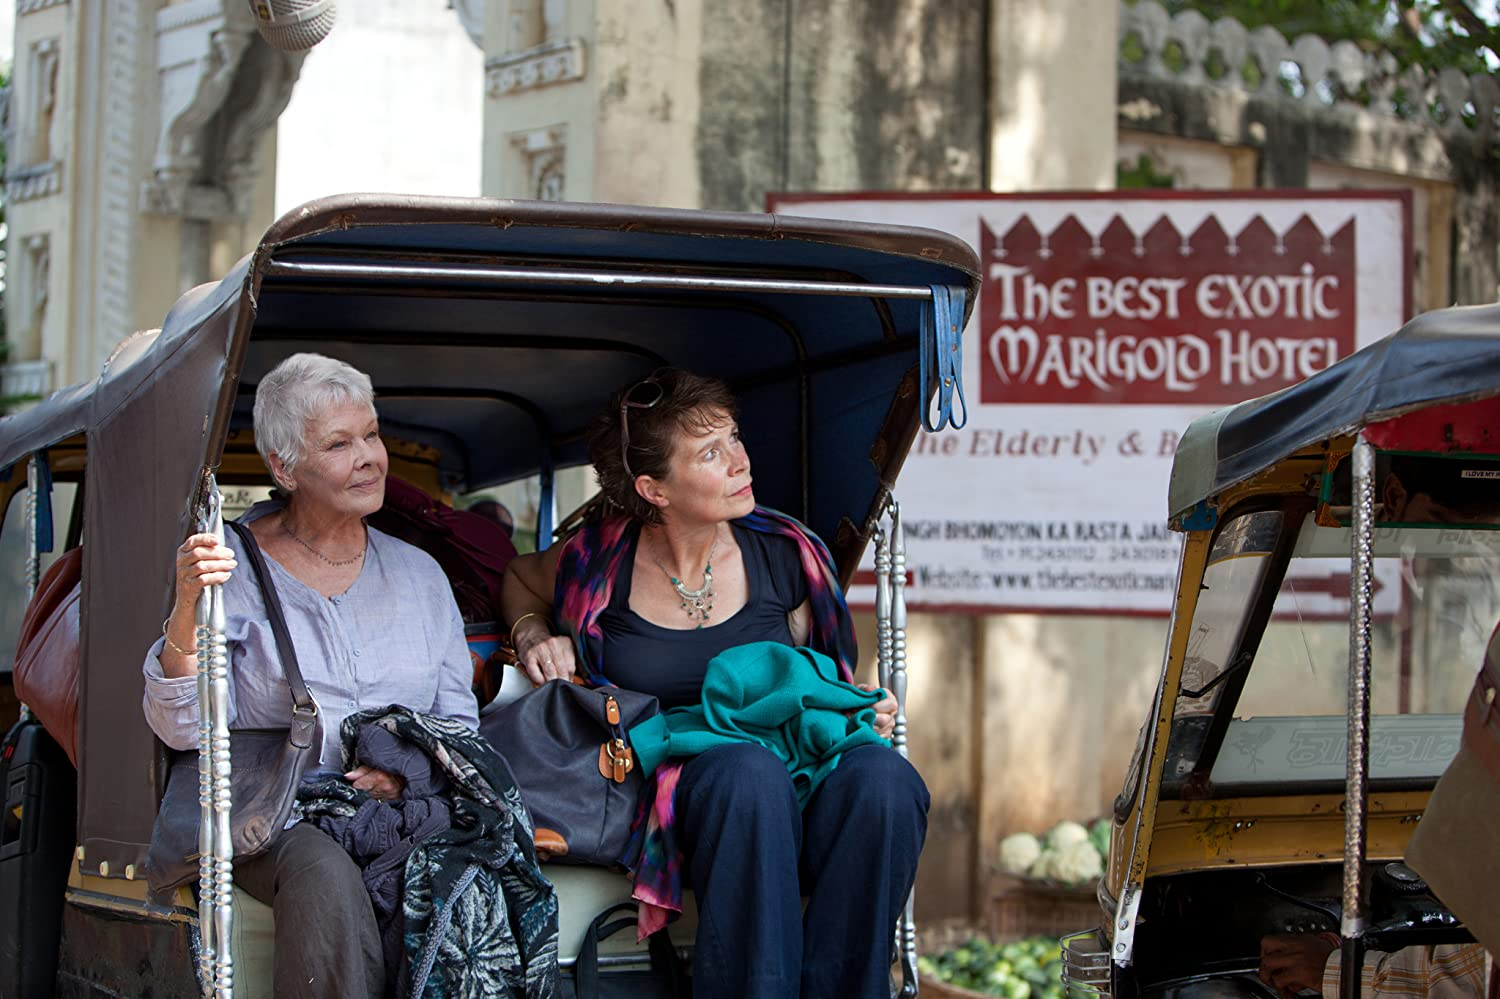 Judi Dench and Celia Imrie in The Best Exotic Marigold Hotel (2011)